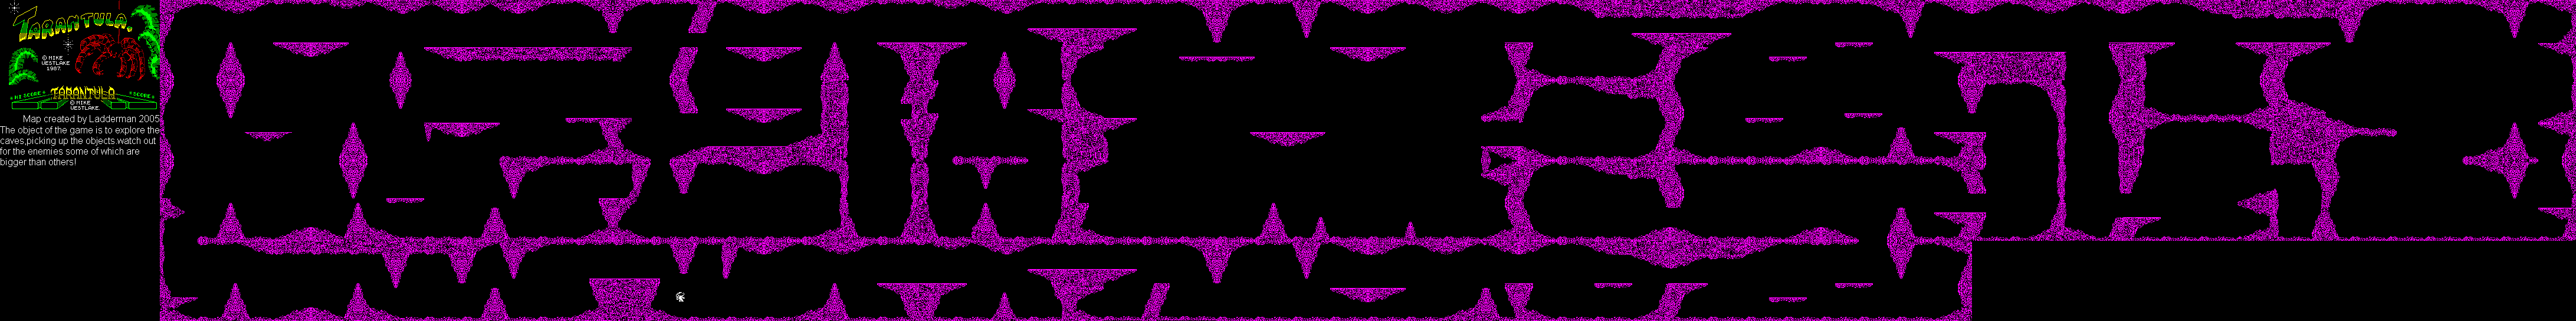 Tarantula - The Map